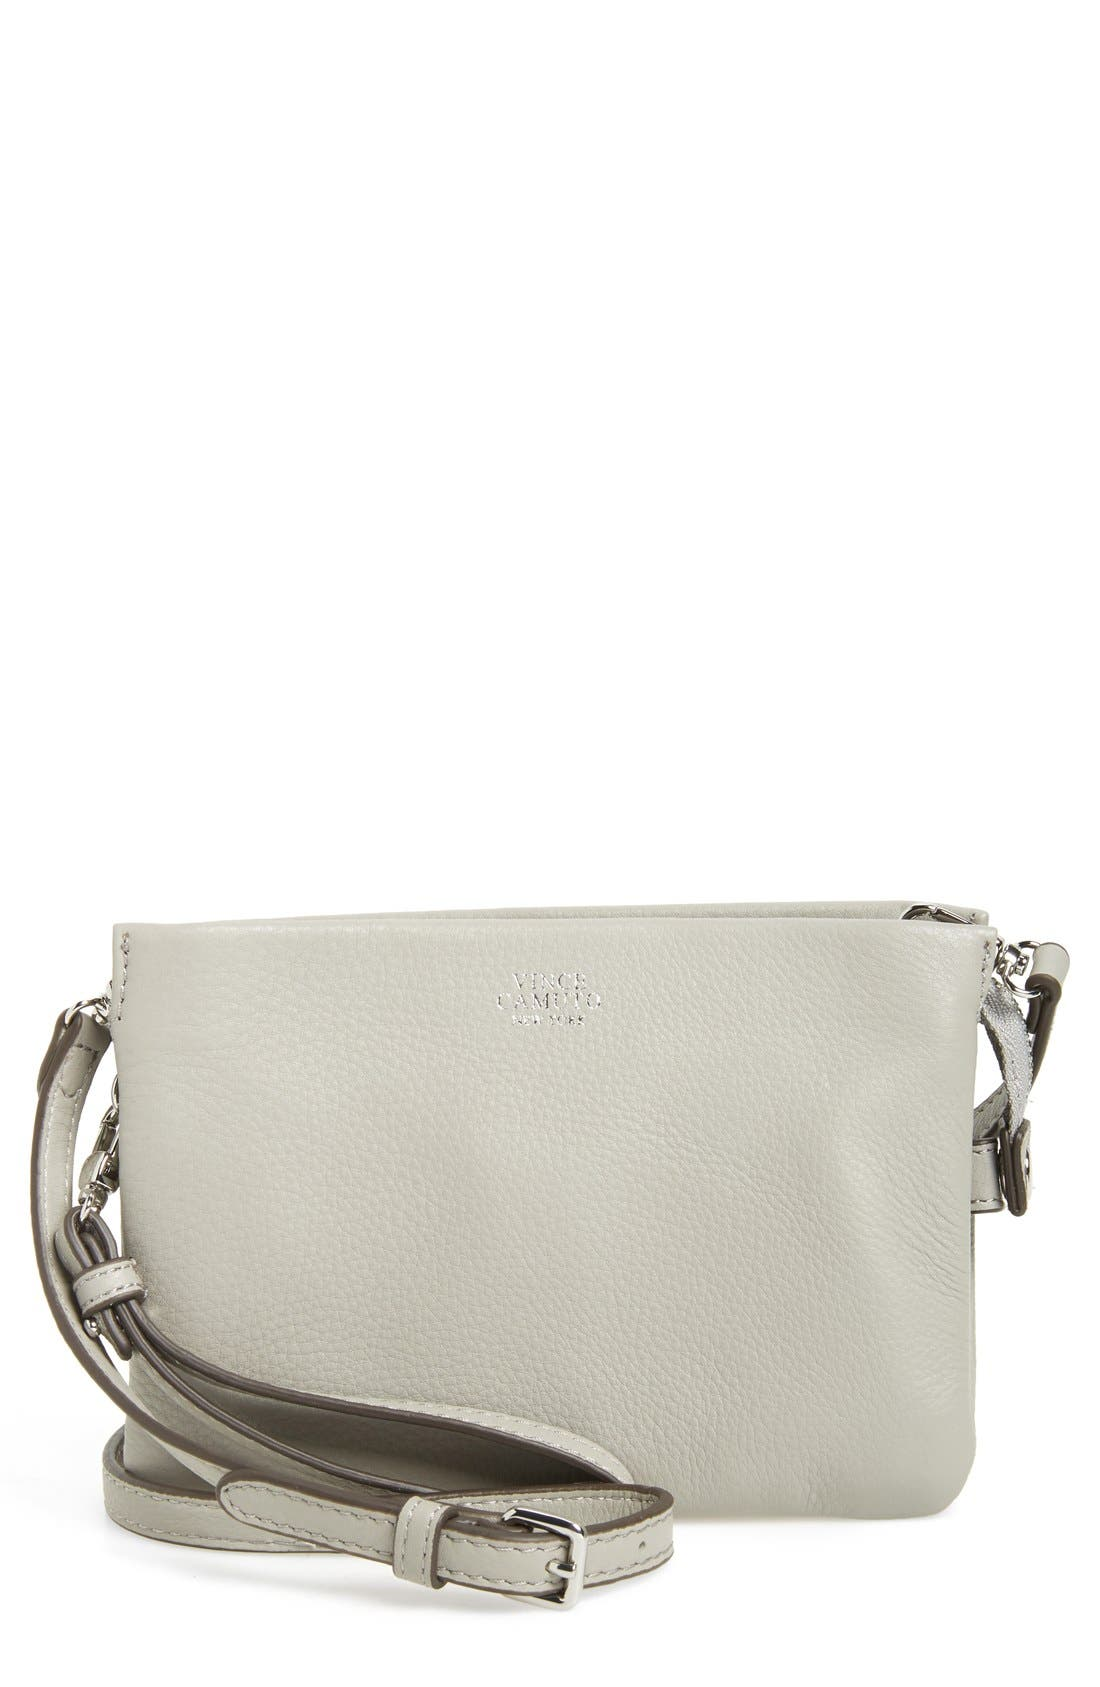 'Cami' Leather Crossbody Bag,                             Main thumbnail 7, color,